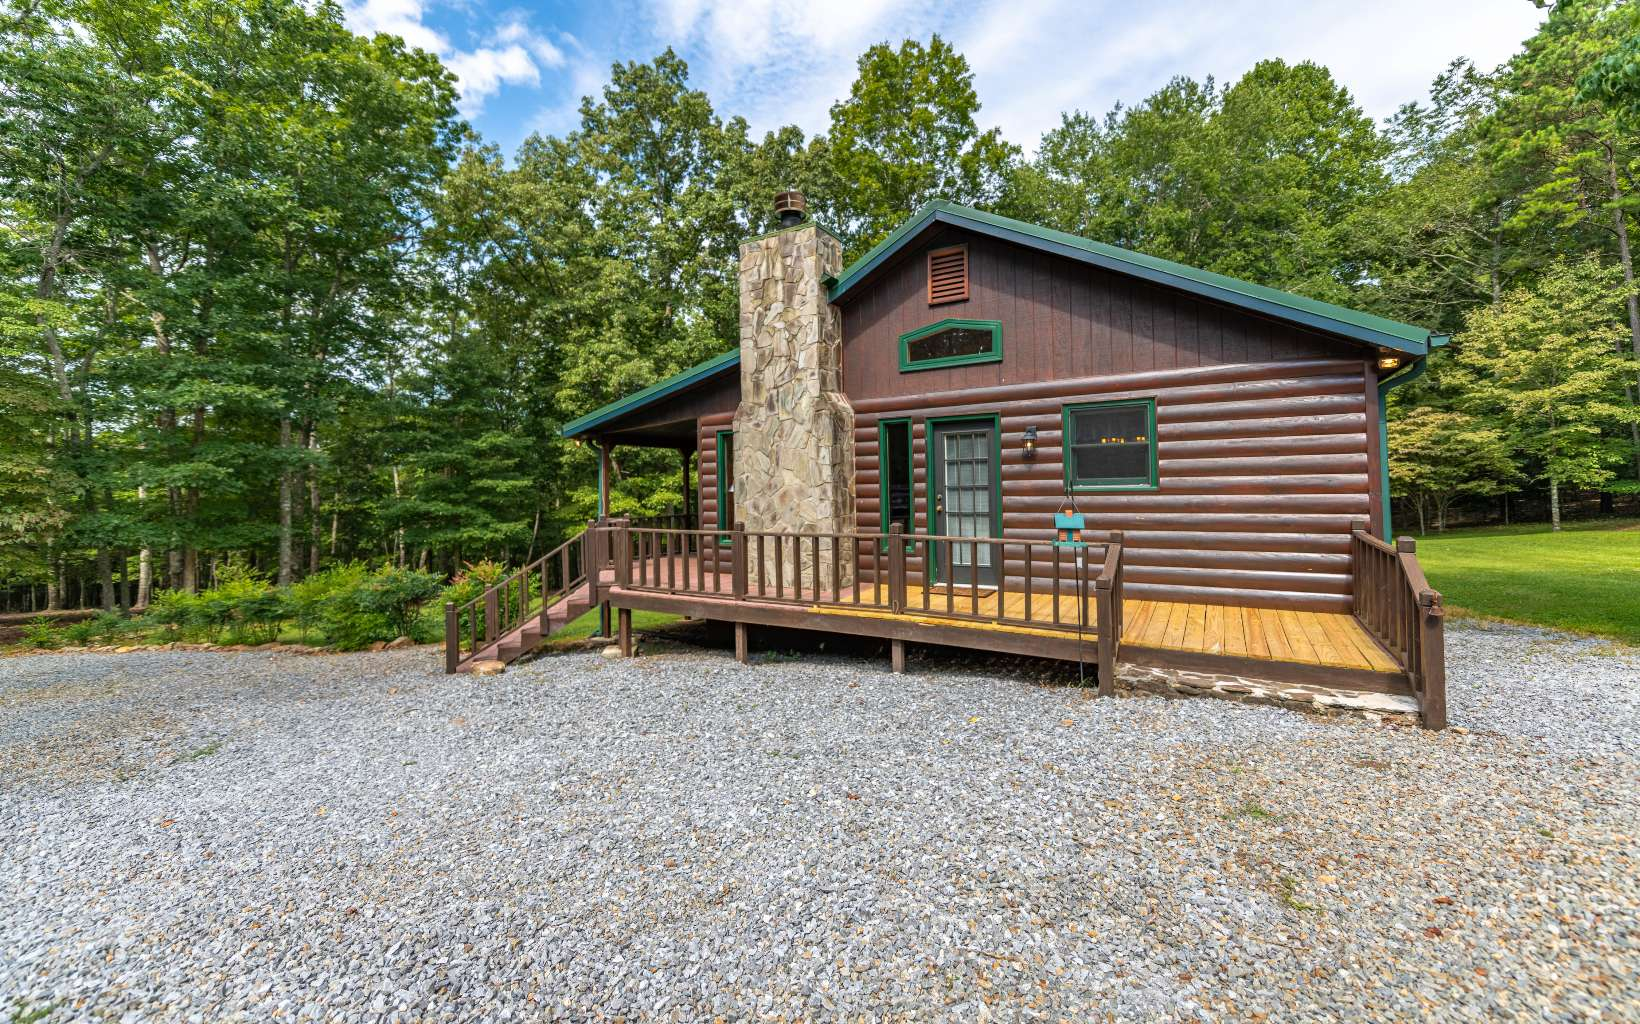 Cabins Property For Sale $250 and Under